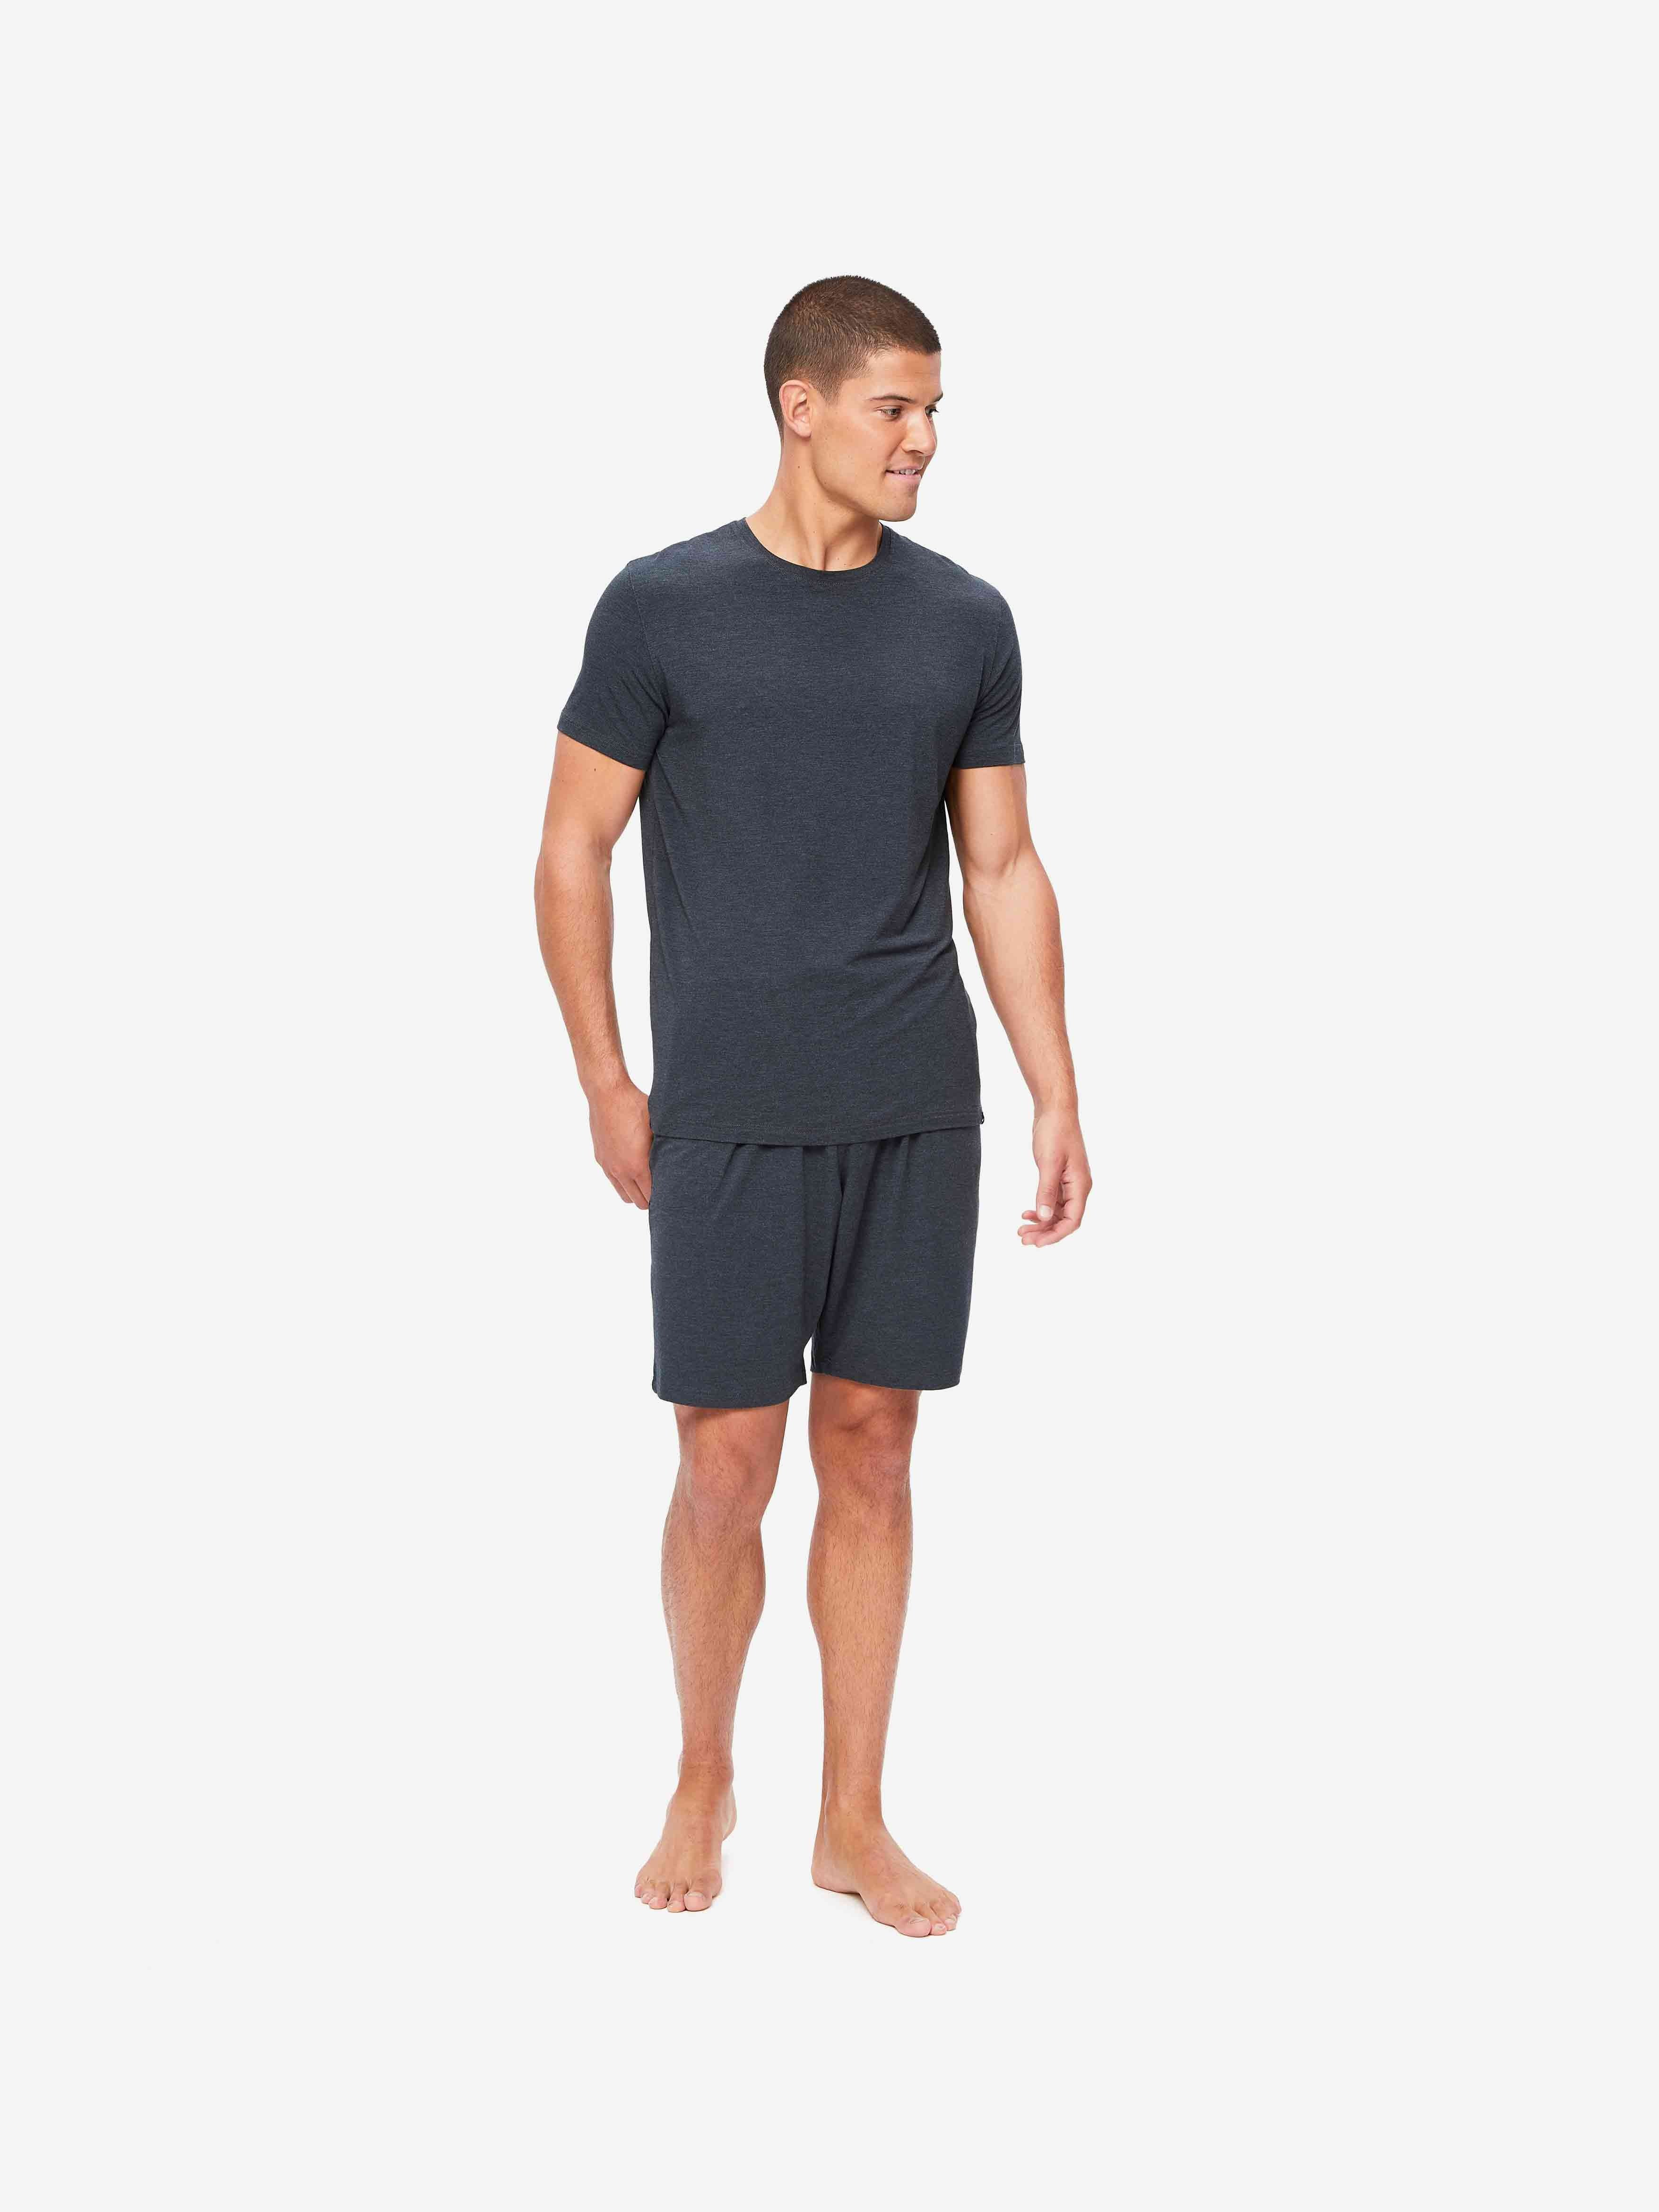 Men's T-Shirt Marlowe Micro Modal Stretch Anthracite